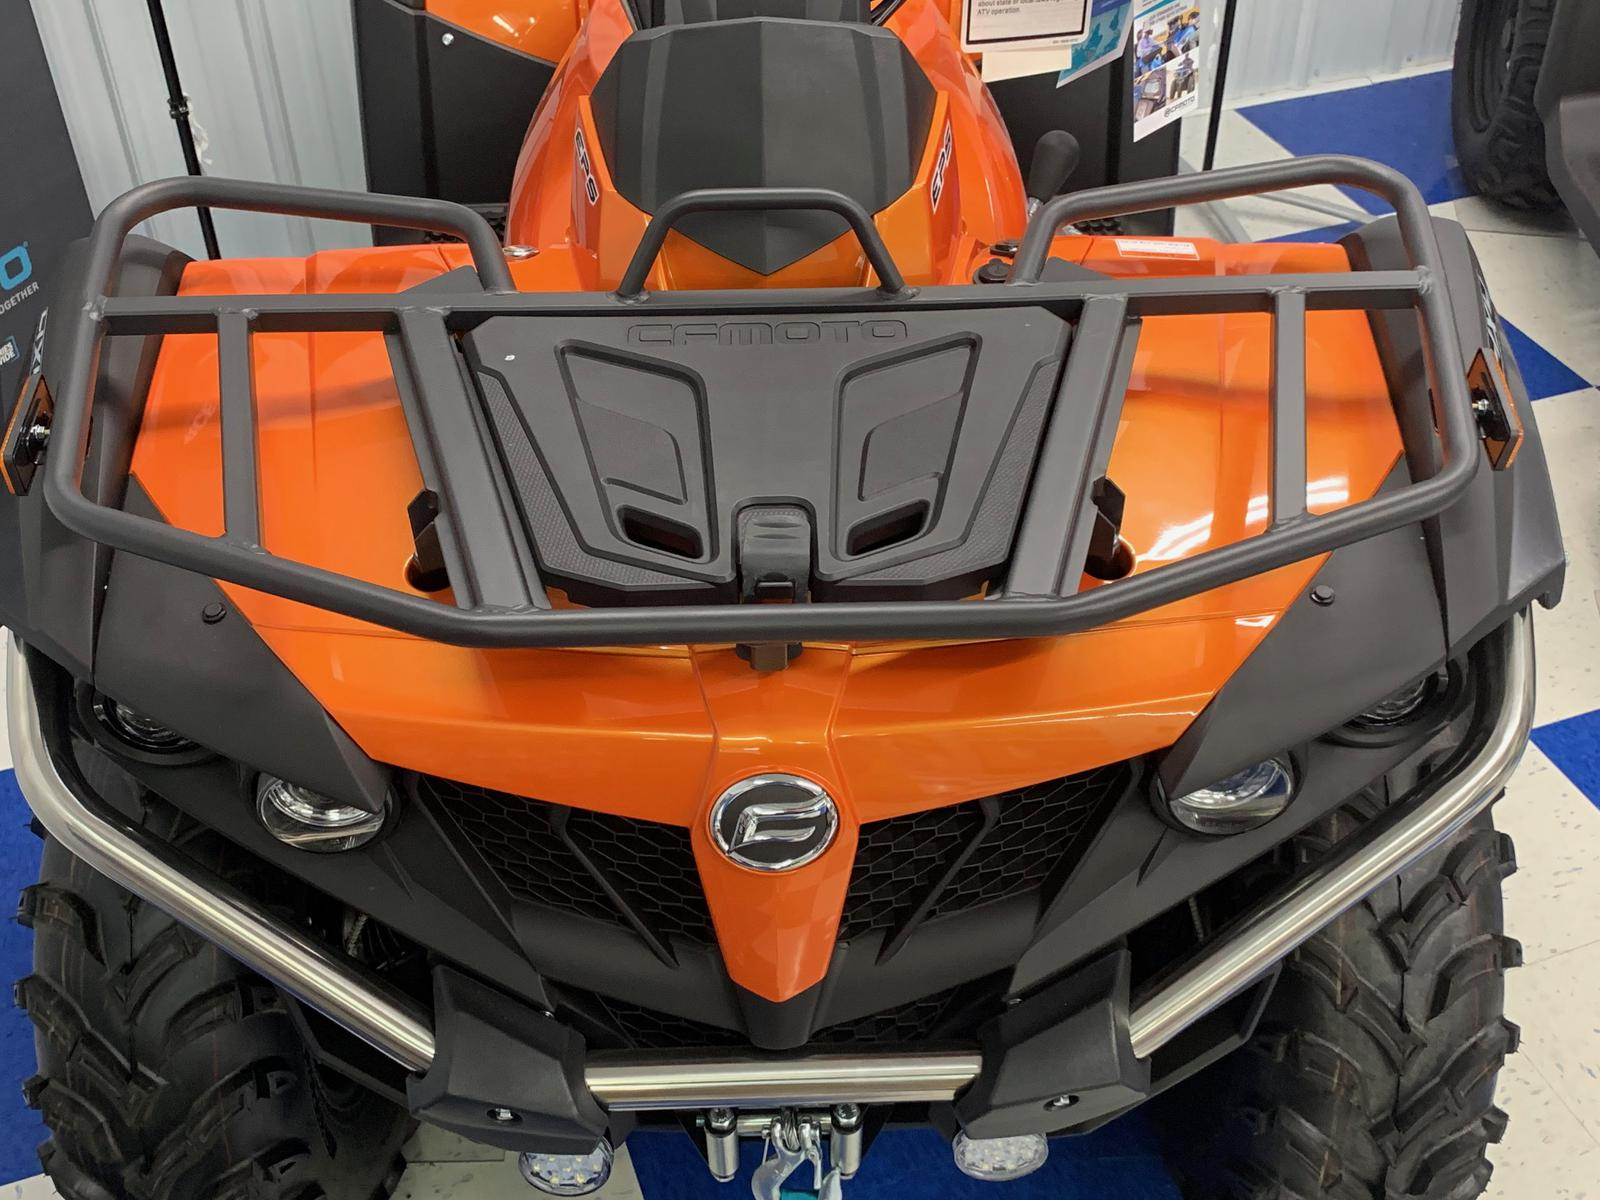 2019 CFMOTO CFORCE 600 4X4 ATV SALE + NO FEES